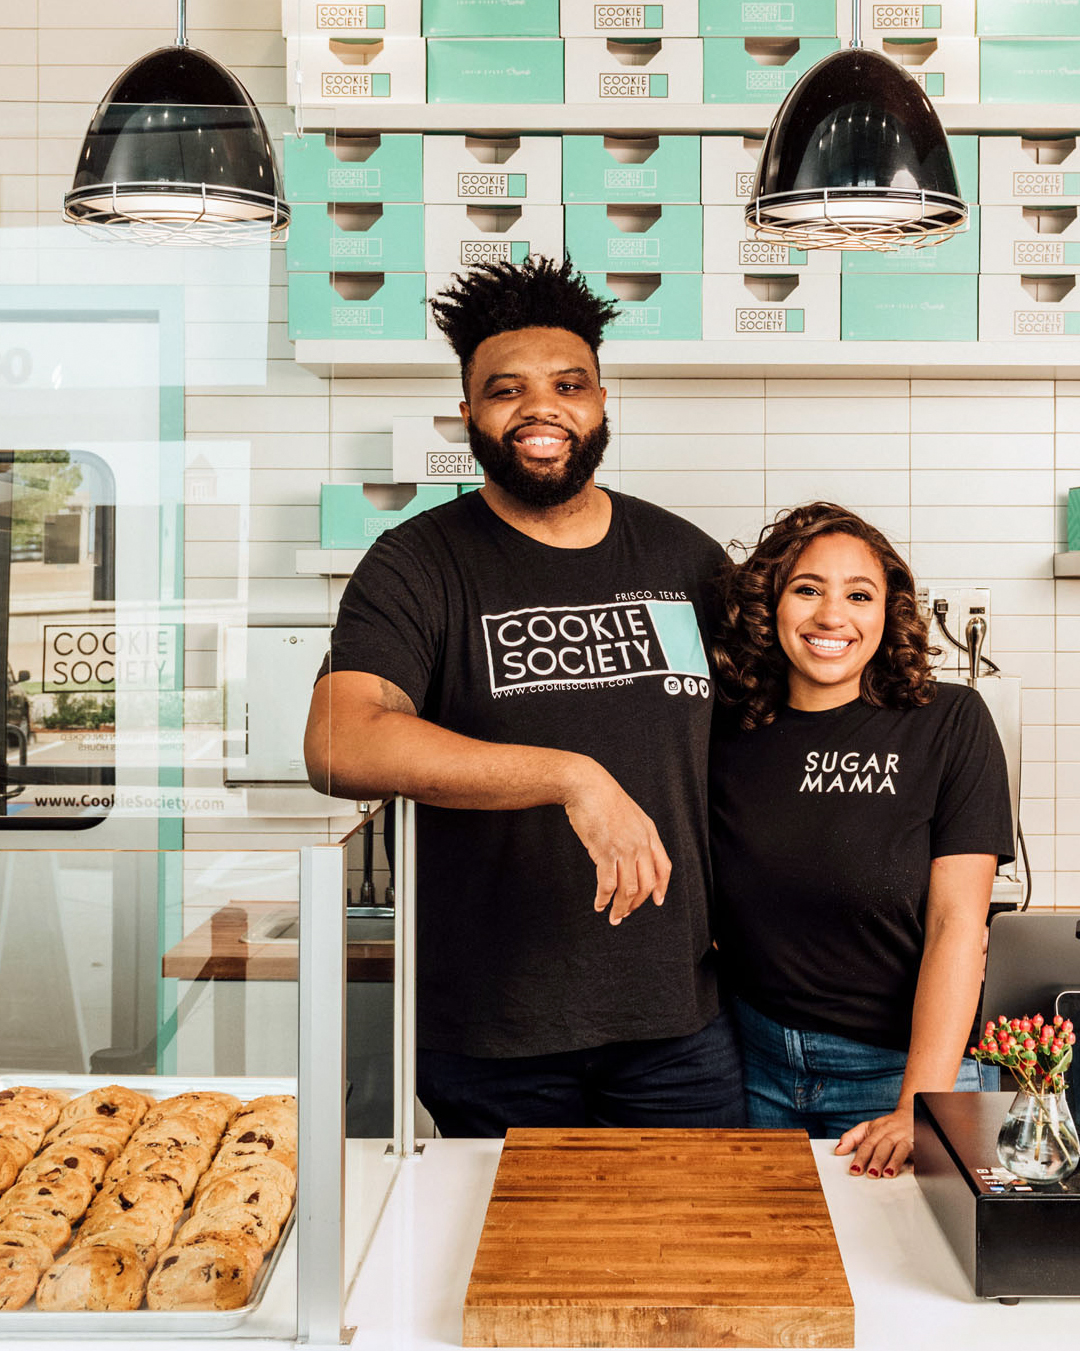 Cookie Society business owners